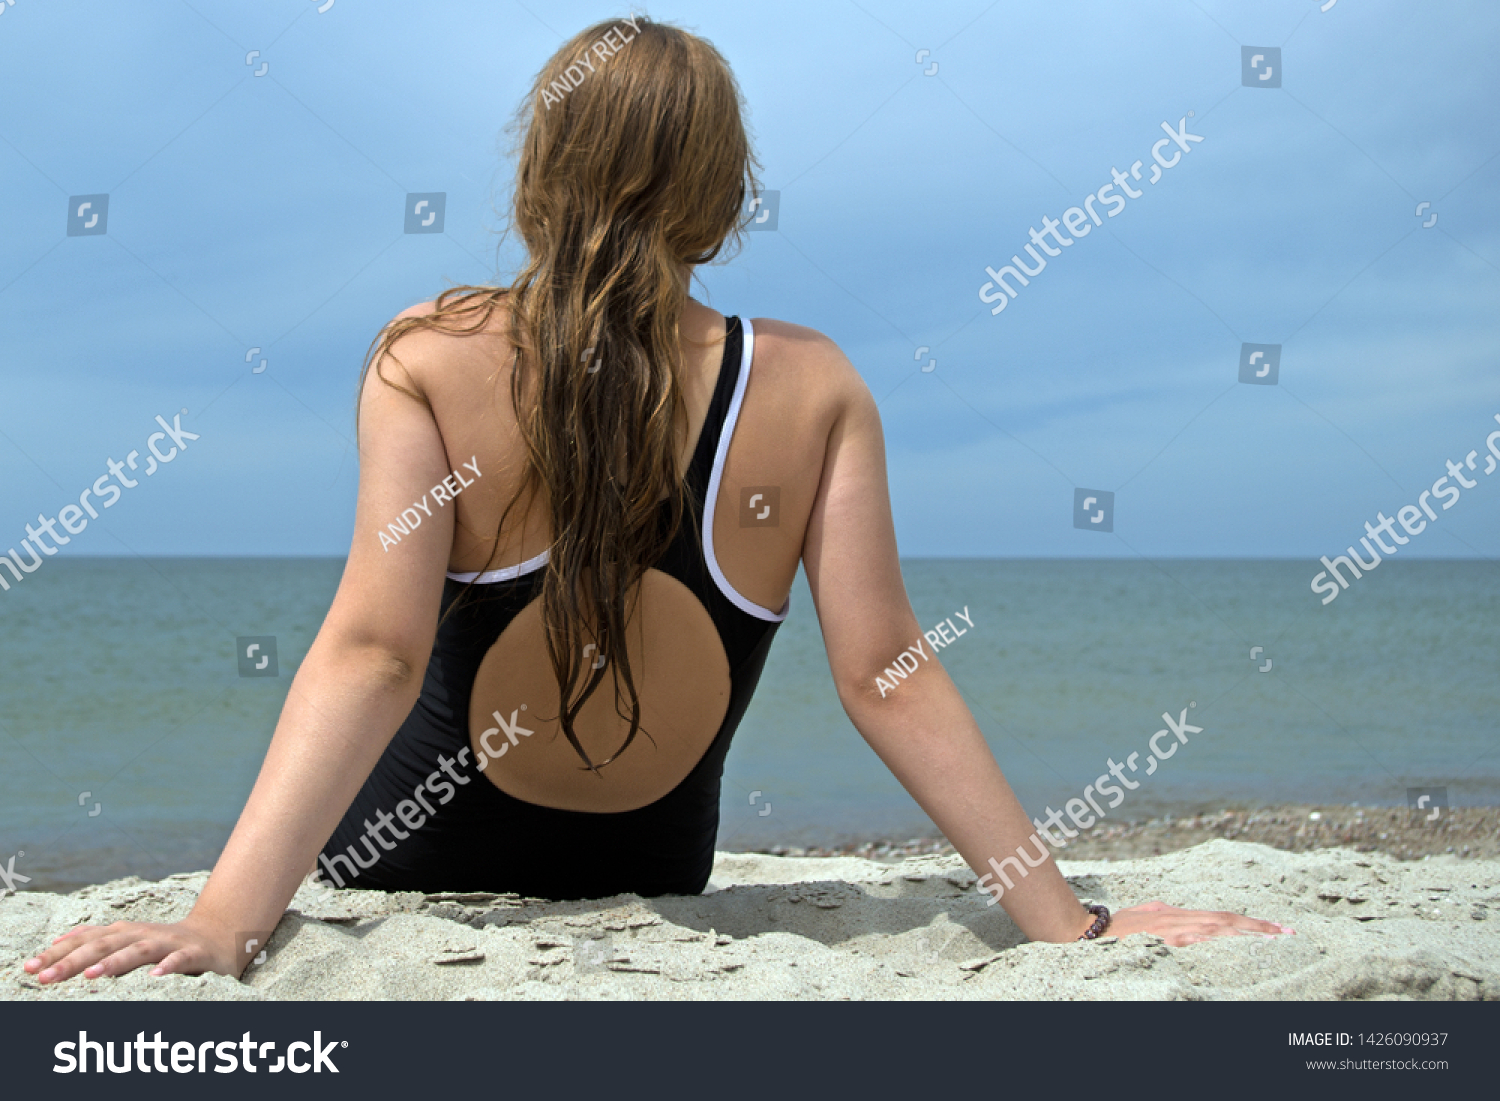 A girl in a black one-piece swimsuit, sitting on a sandy beach with her back to the viewer, looking into the distance